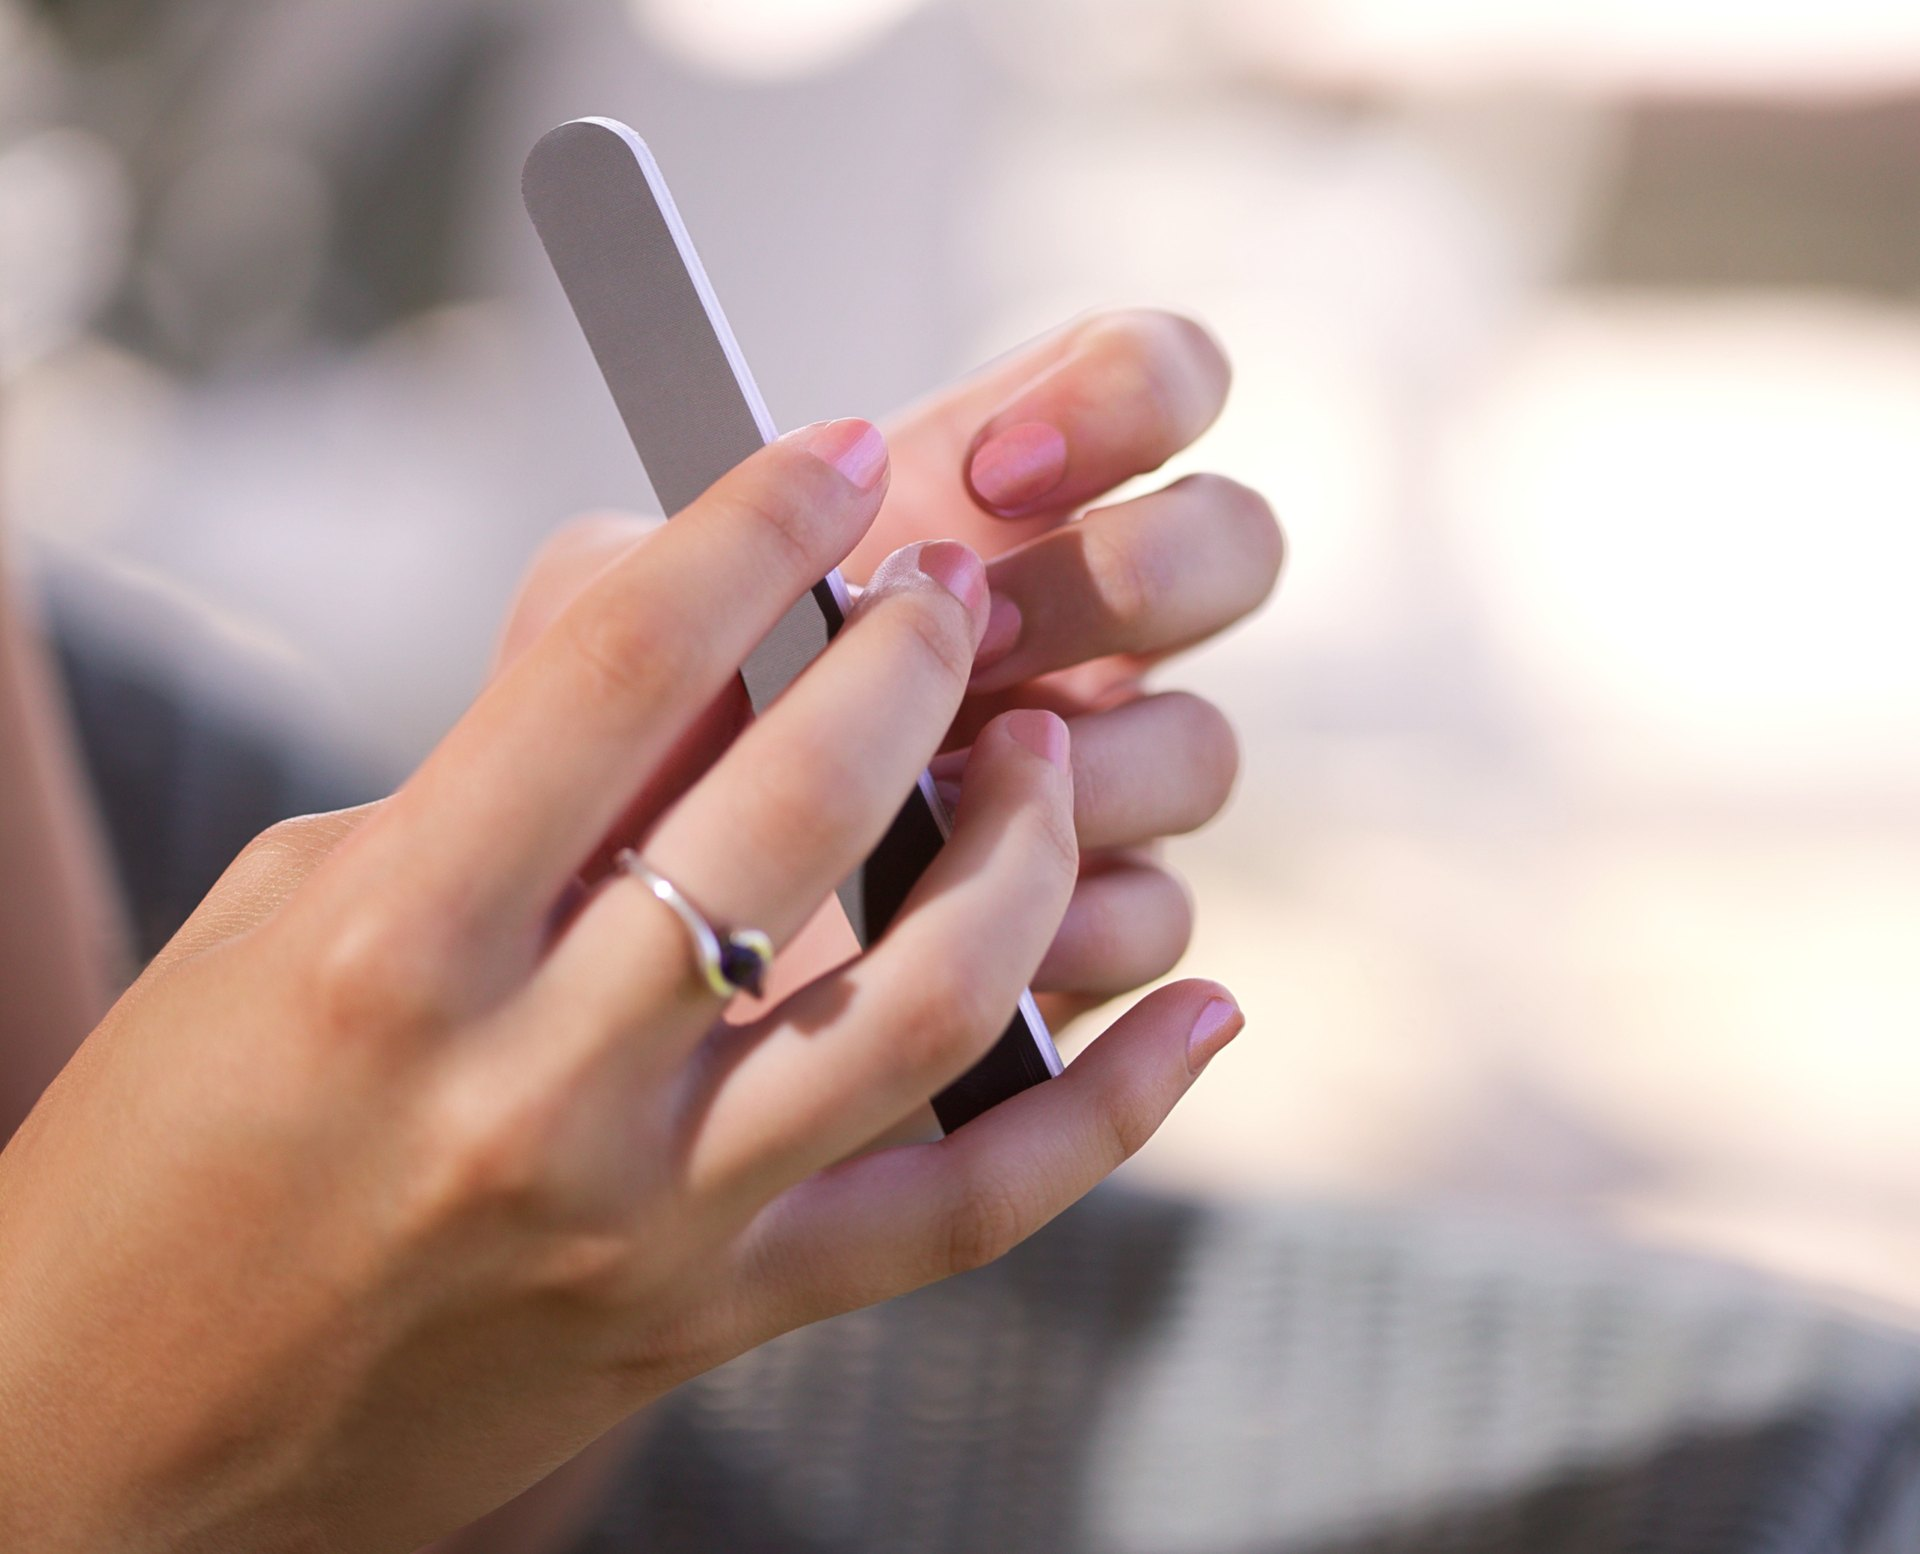 How to Treat Split Nails | LIVESTRONG.COM